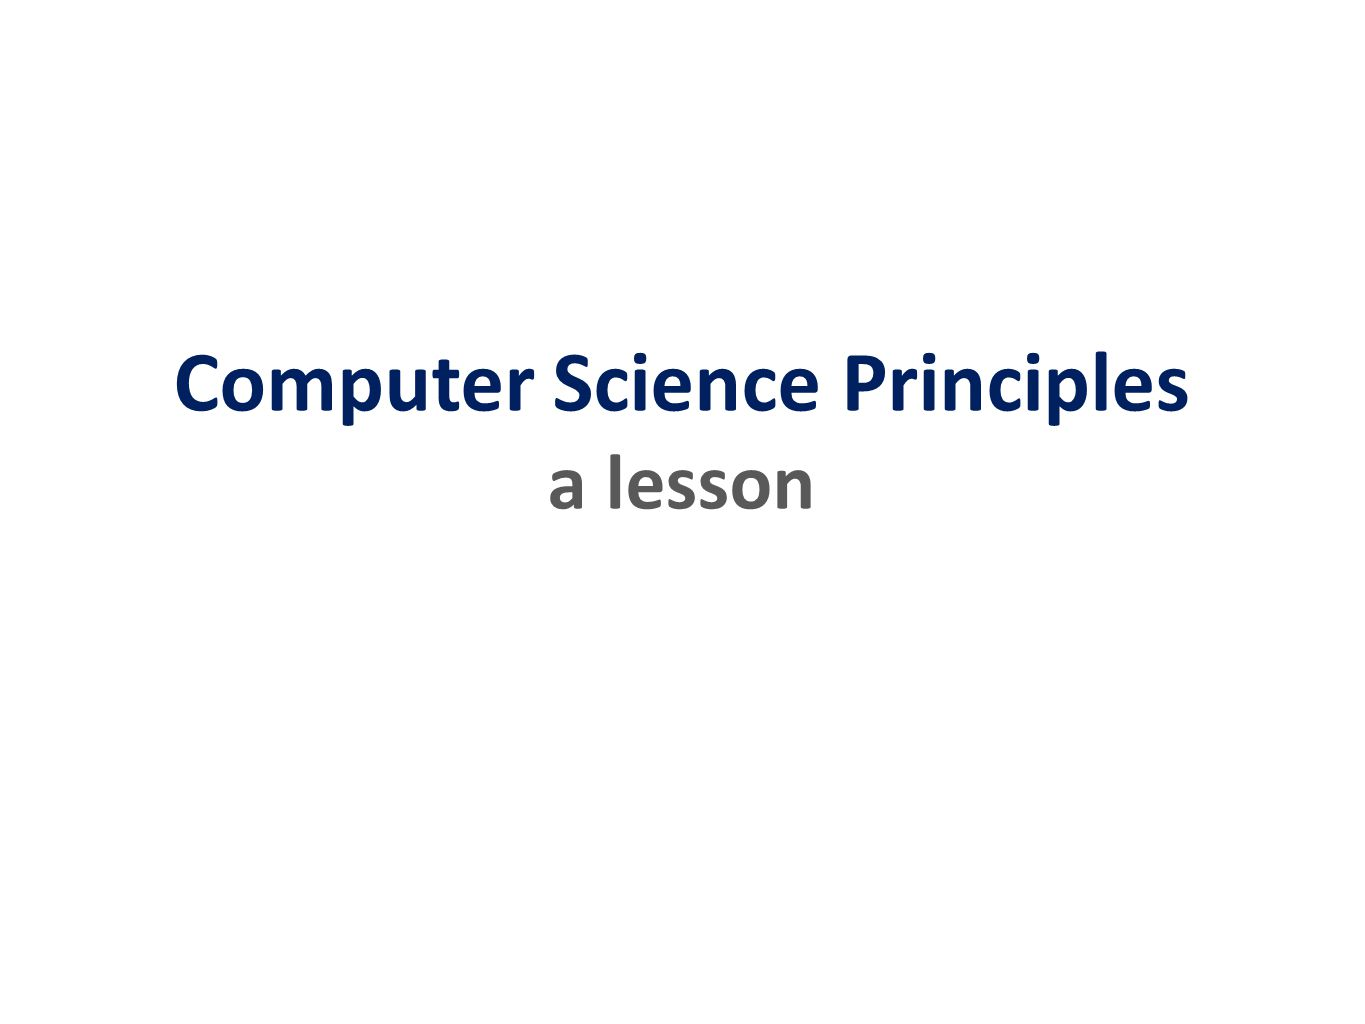 Computer Science Principles a lesson